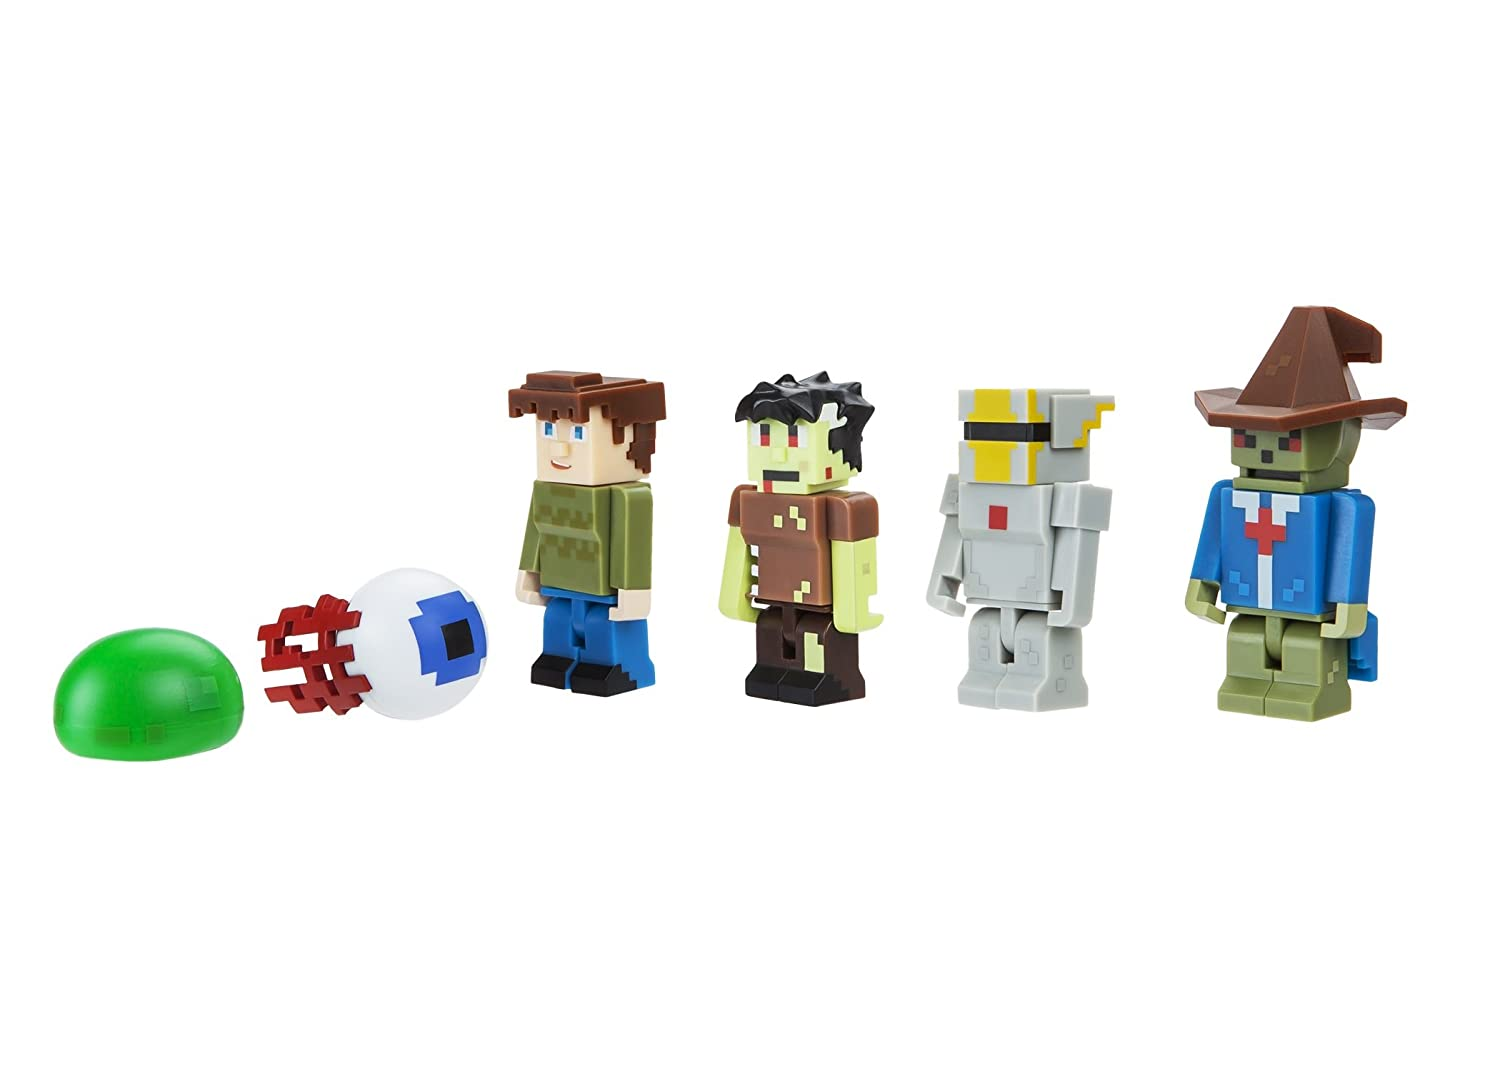 Terraria World Collectors 6 Pack Fully Articulated Action Figures Wiring Guide Set Includes Silver Armor